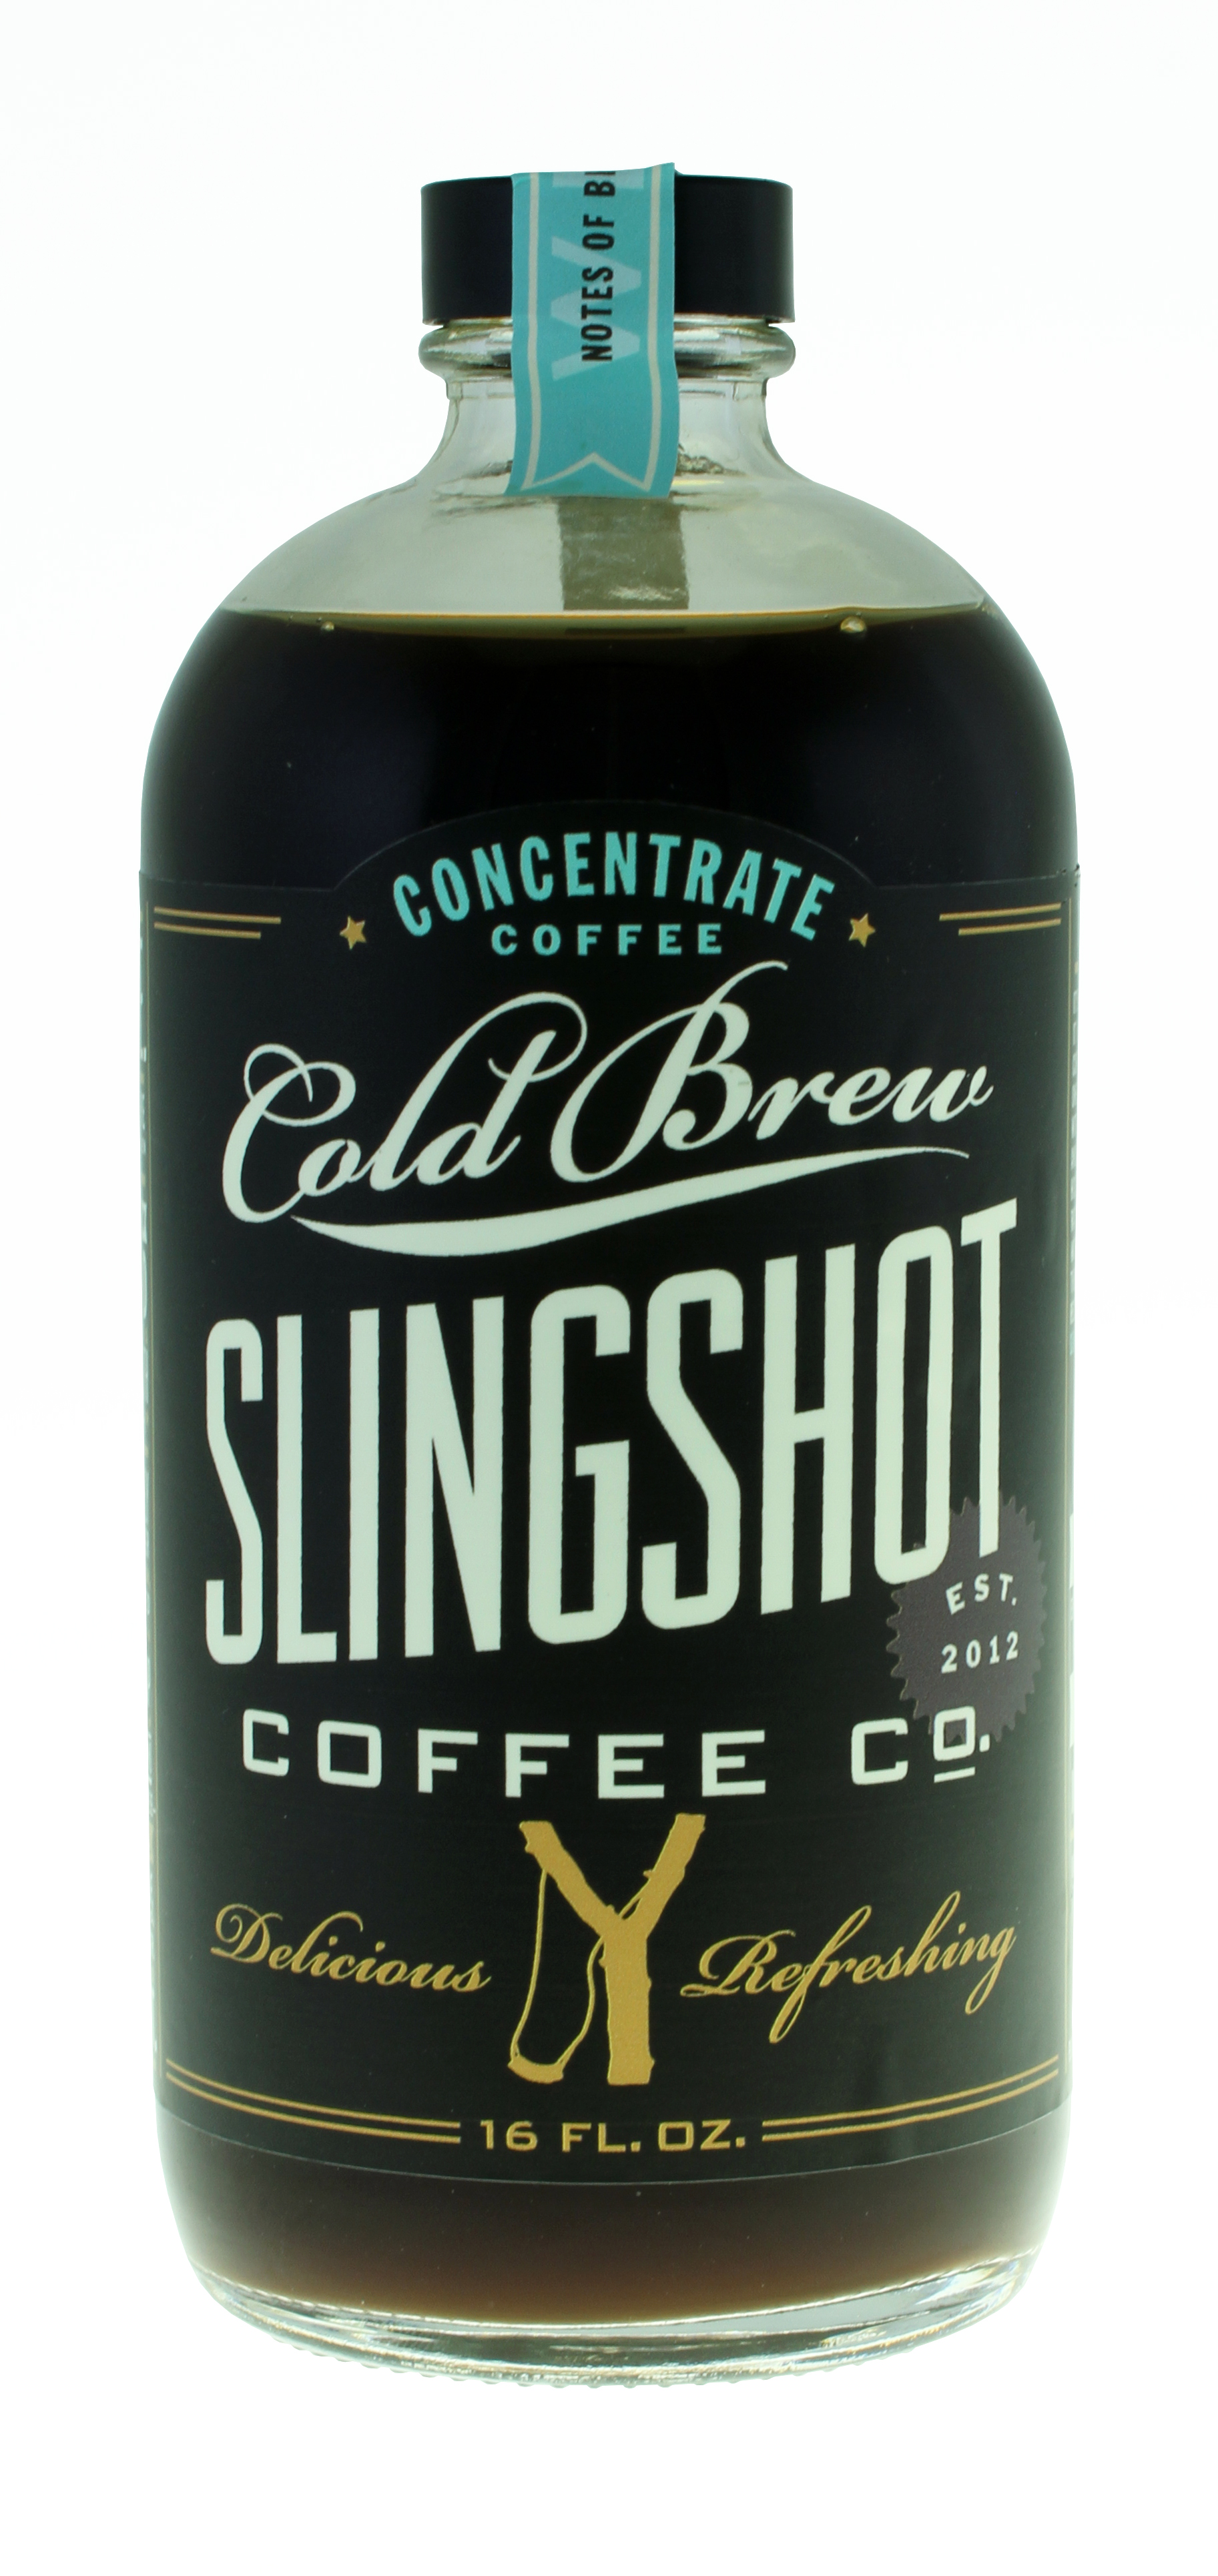 Slingshot Coffee Co.: